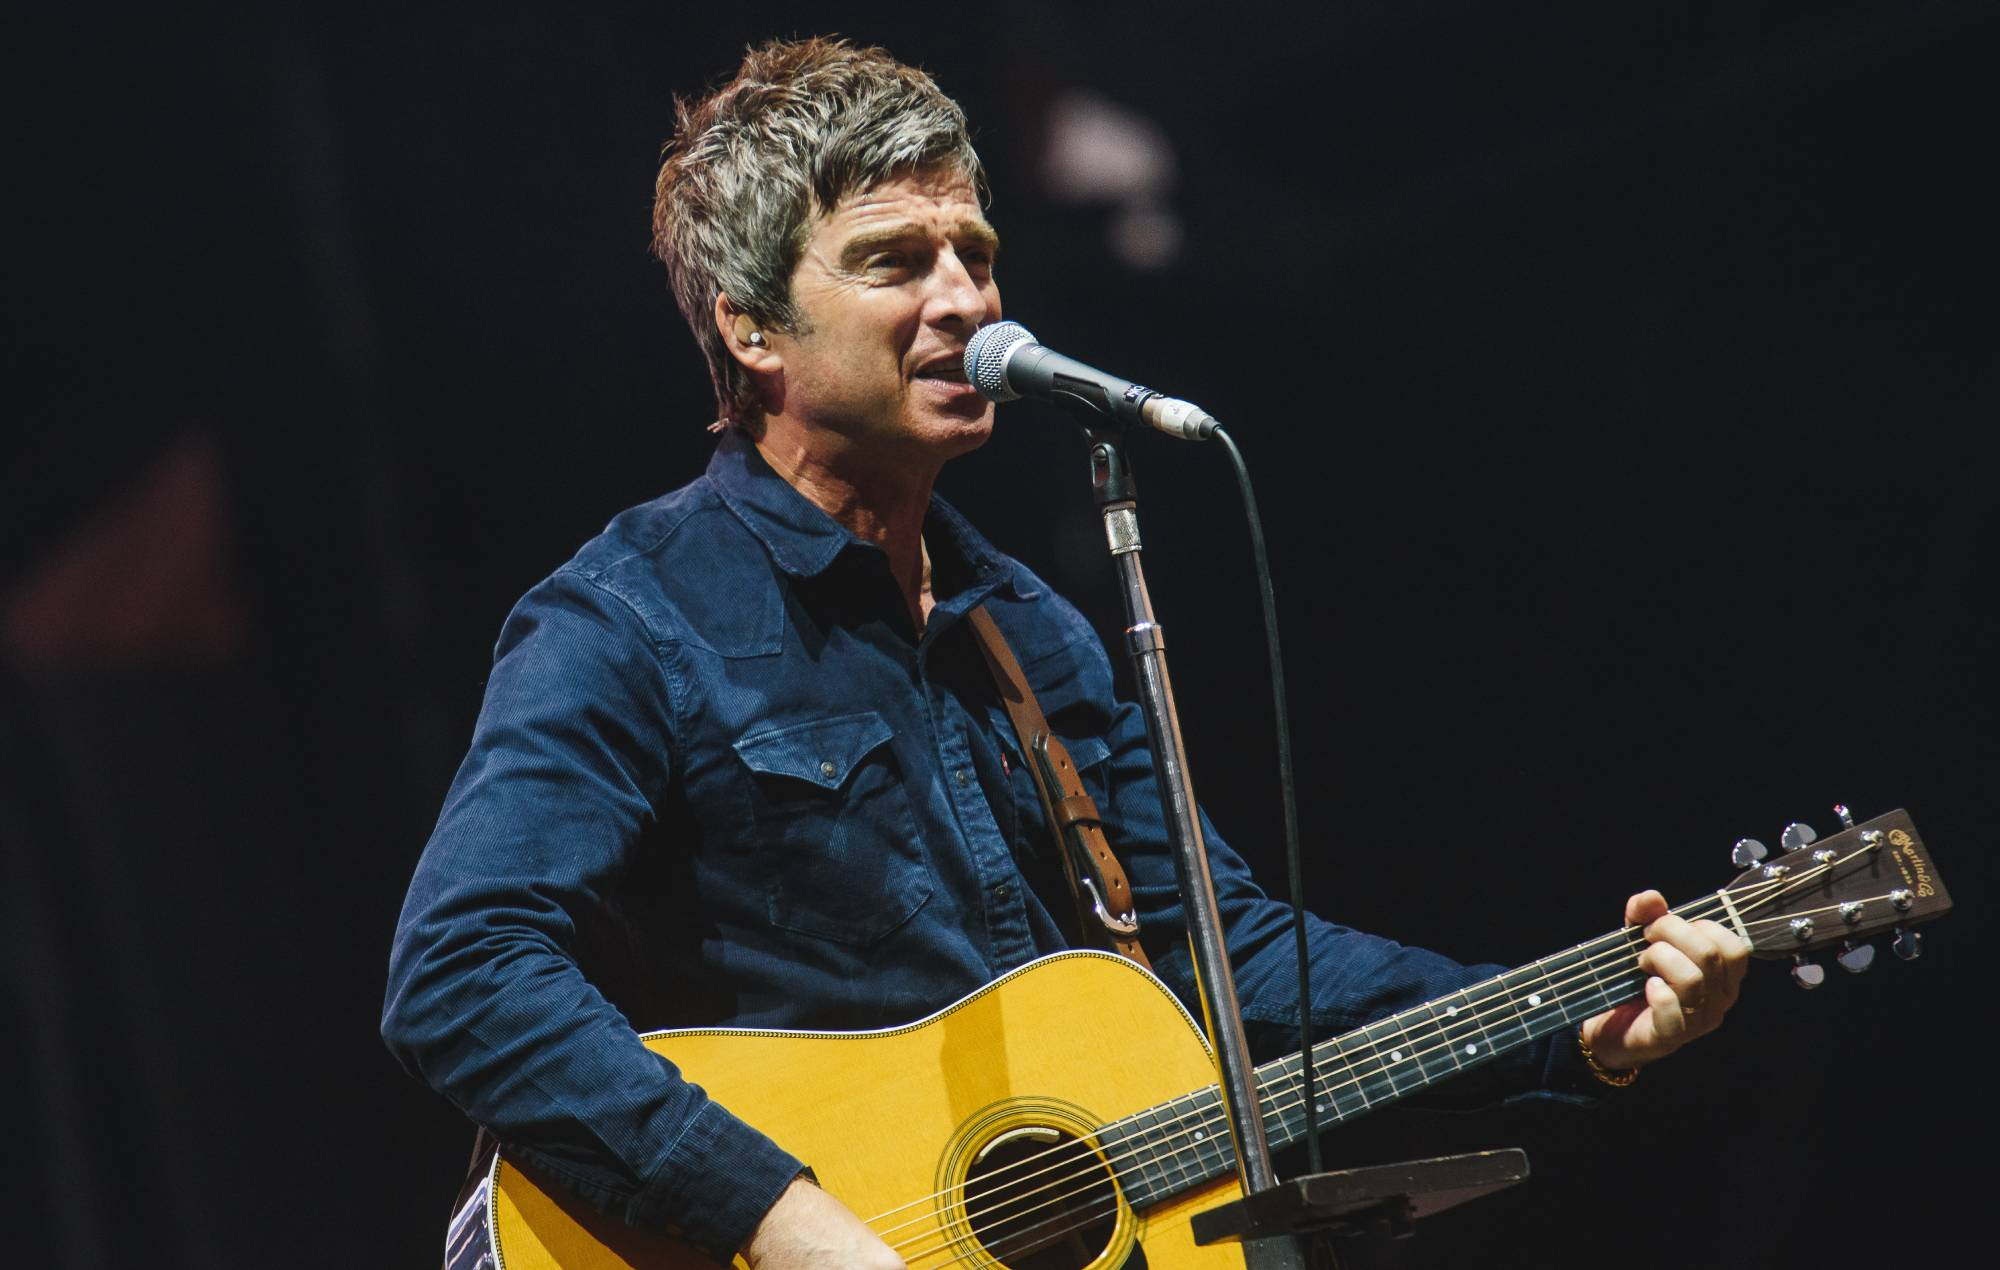 Noel Gallagher donates signed guitar to #ILoveLive raffle to help stage crew